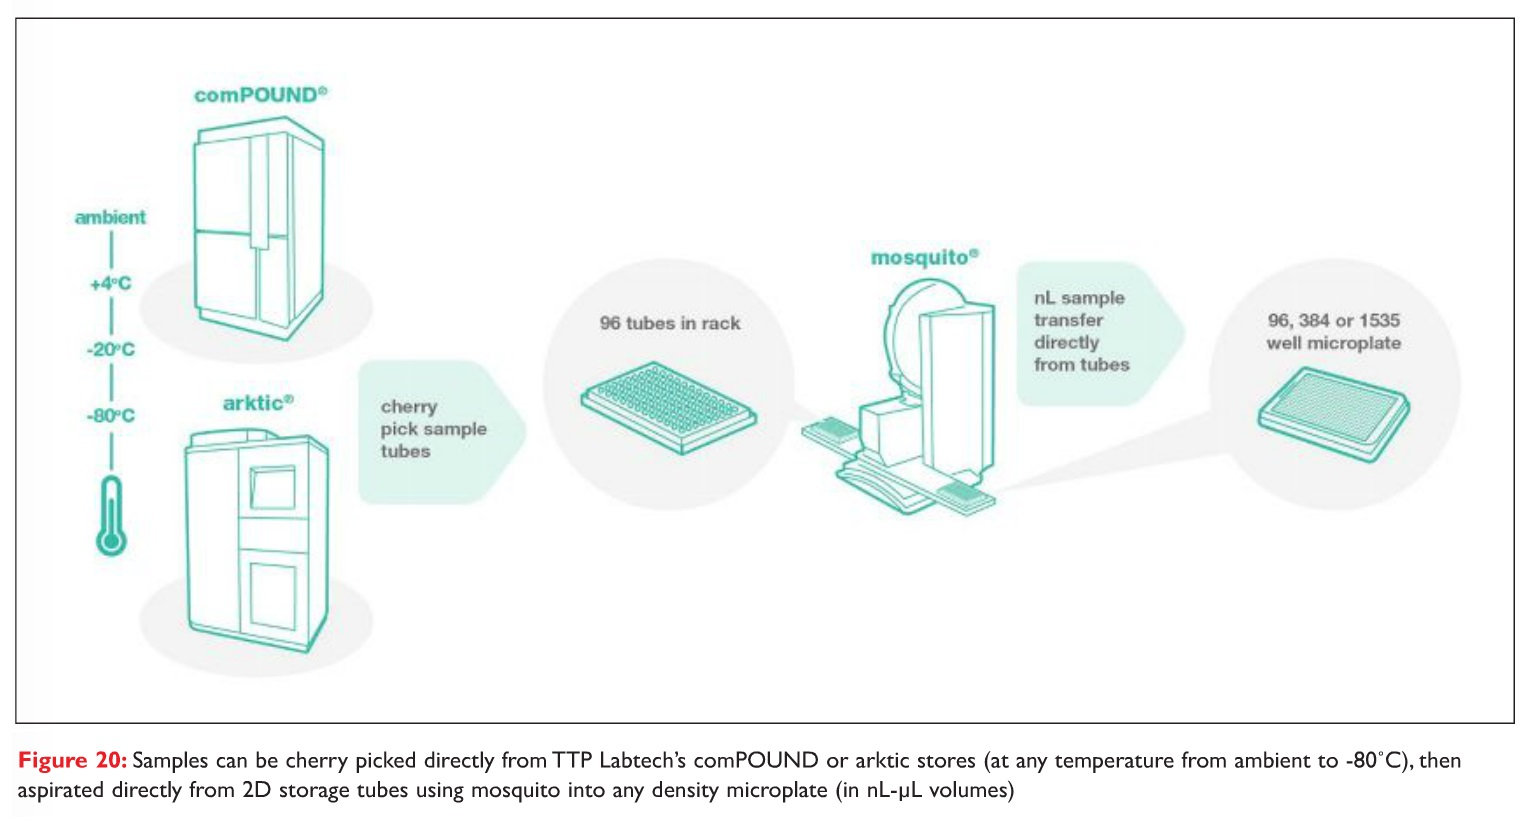 Figure 20 Samples can be cherry picked directly from TTP Labtech's comPOUND or arktic stores